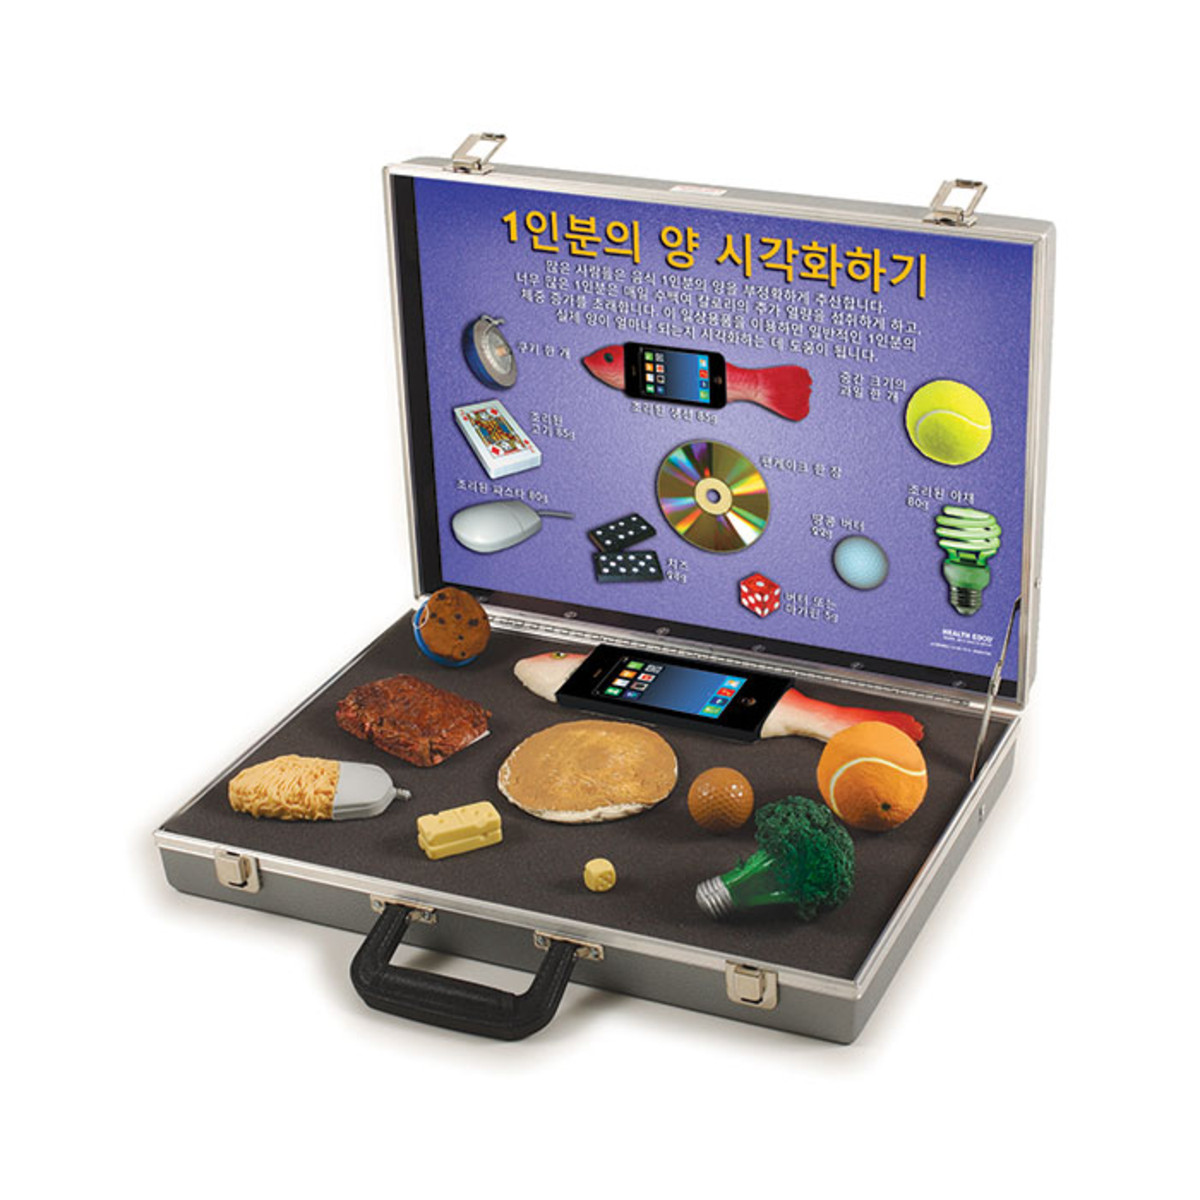 Health Edco; Korean; health education products; diabetes; weight gain; portion size